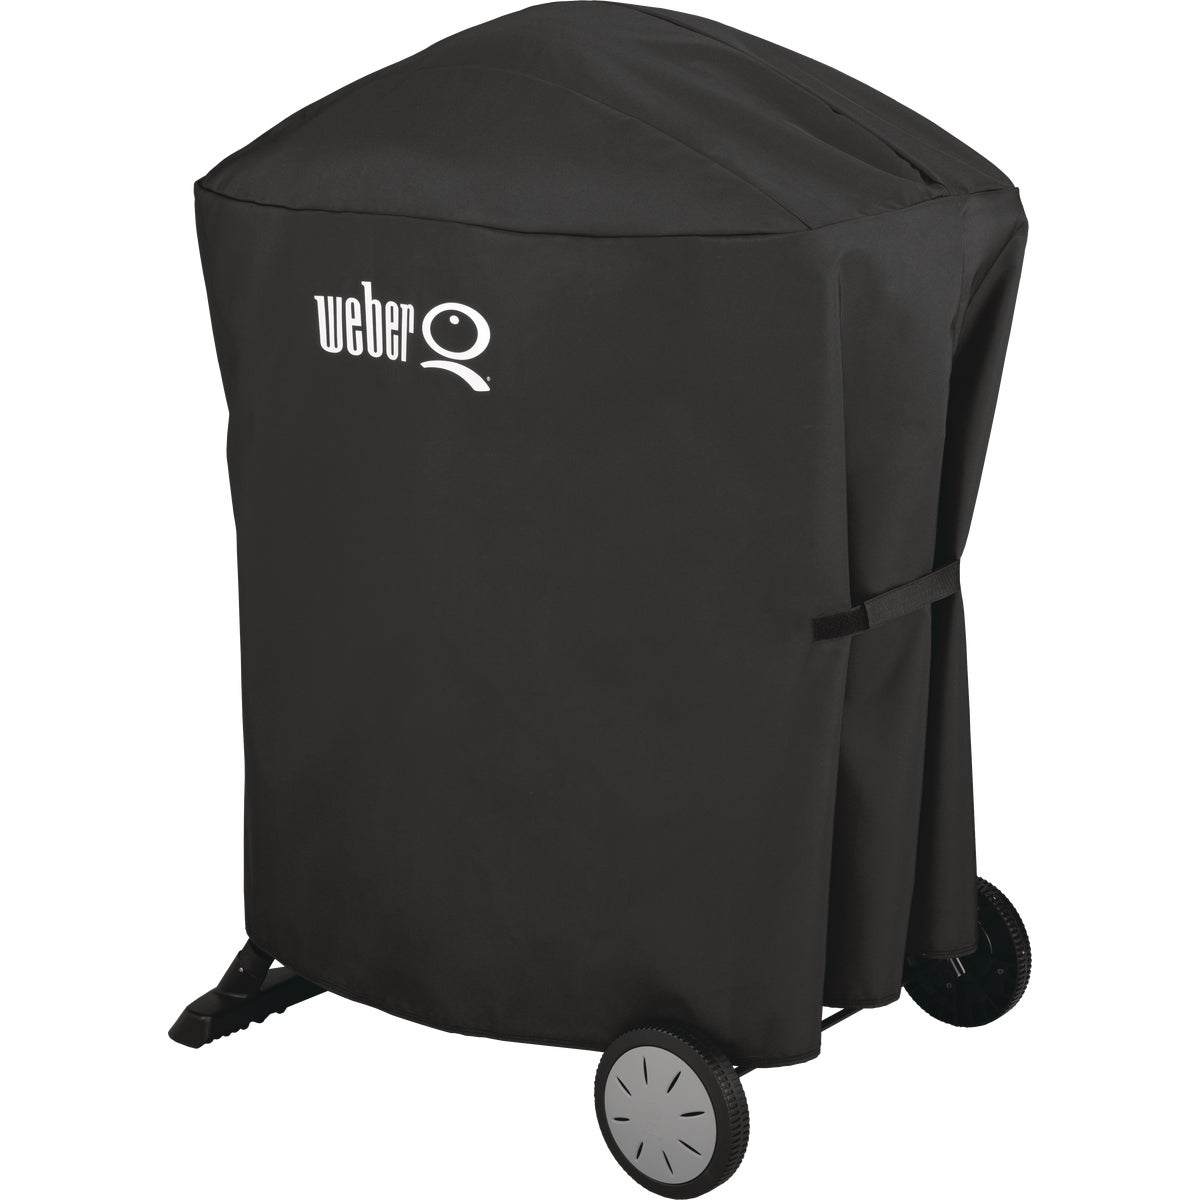 WEBERQ W/CART PREM COVER - 6554 by Weber